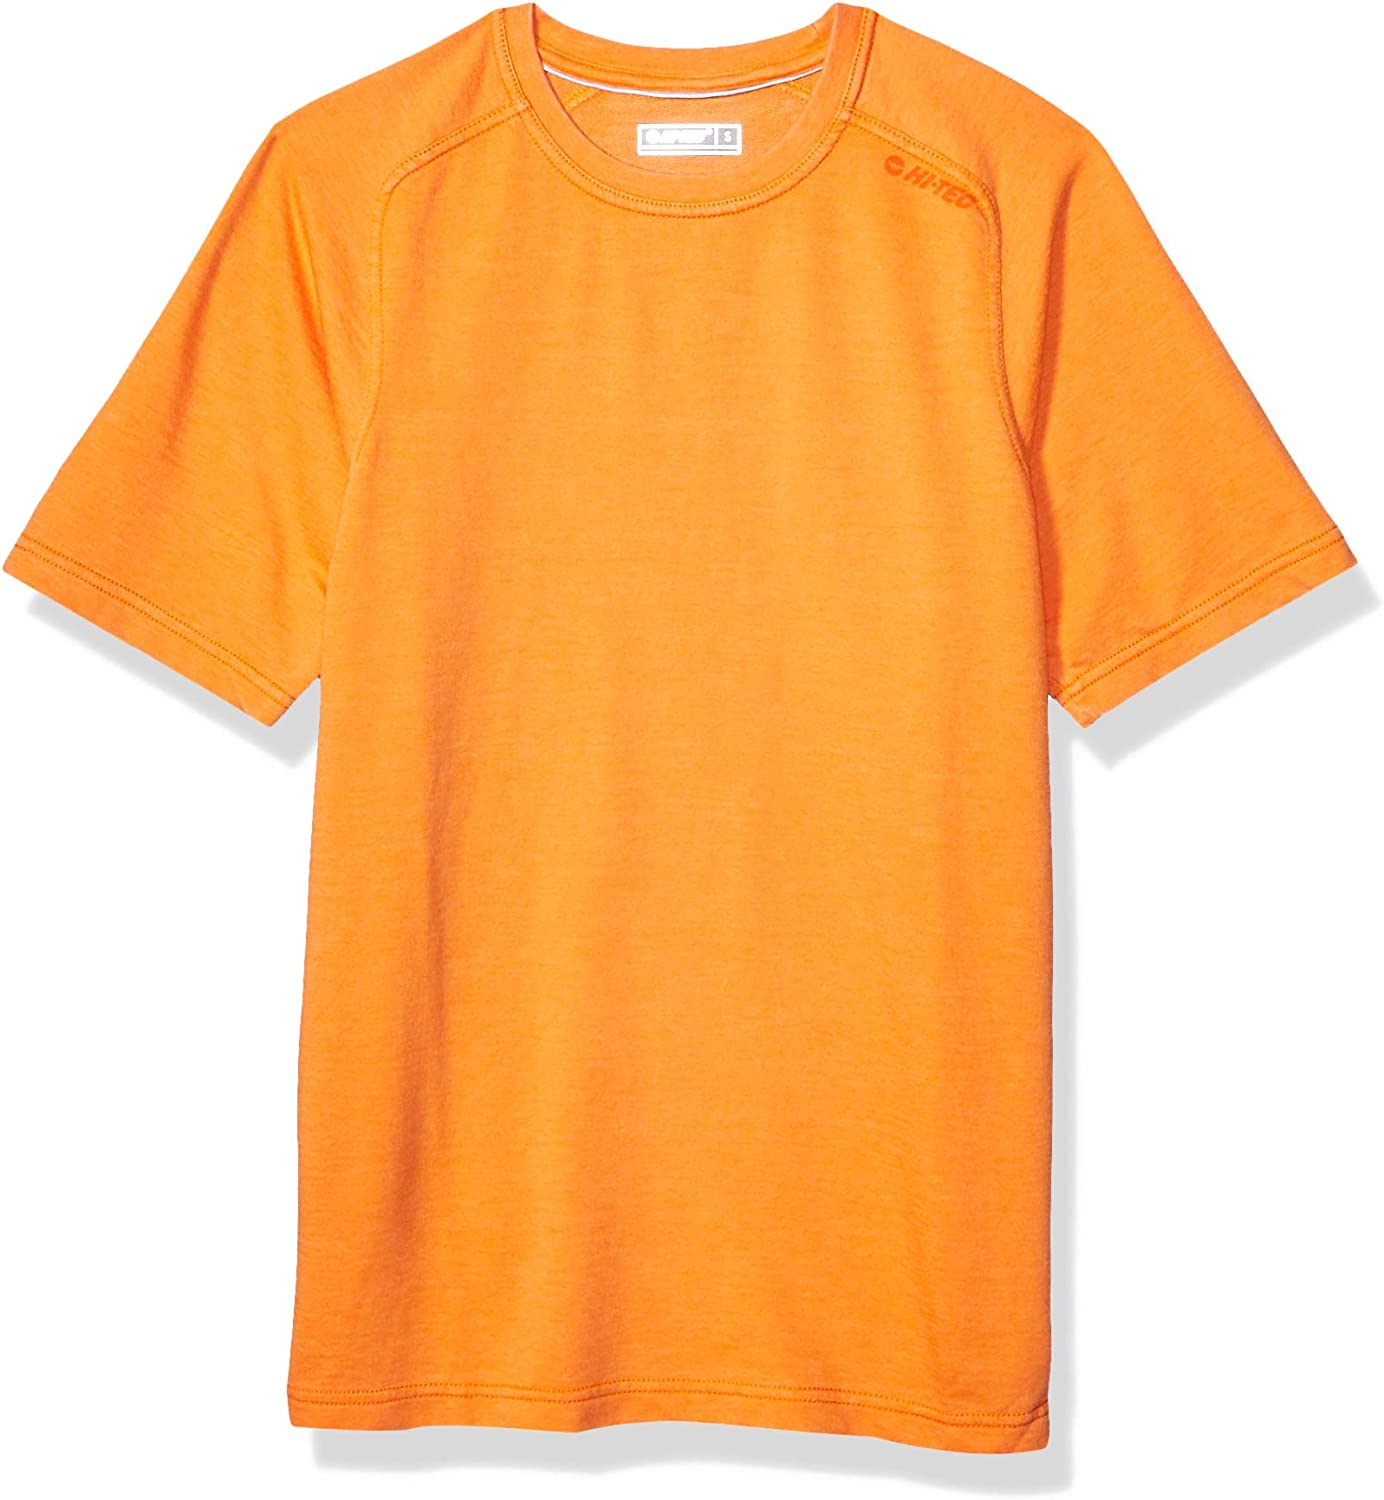 Persimmon Orange HI-TEC Mens Mens Gourd French Terry Crew Short Sleeve T-Shirt S